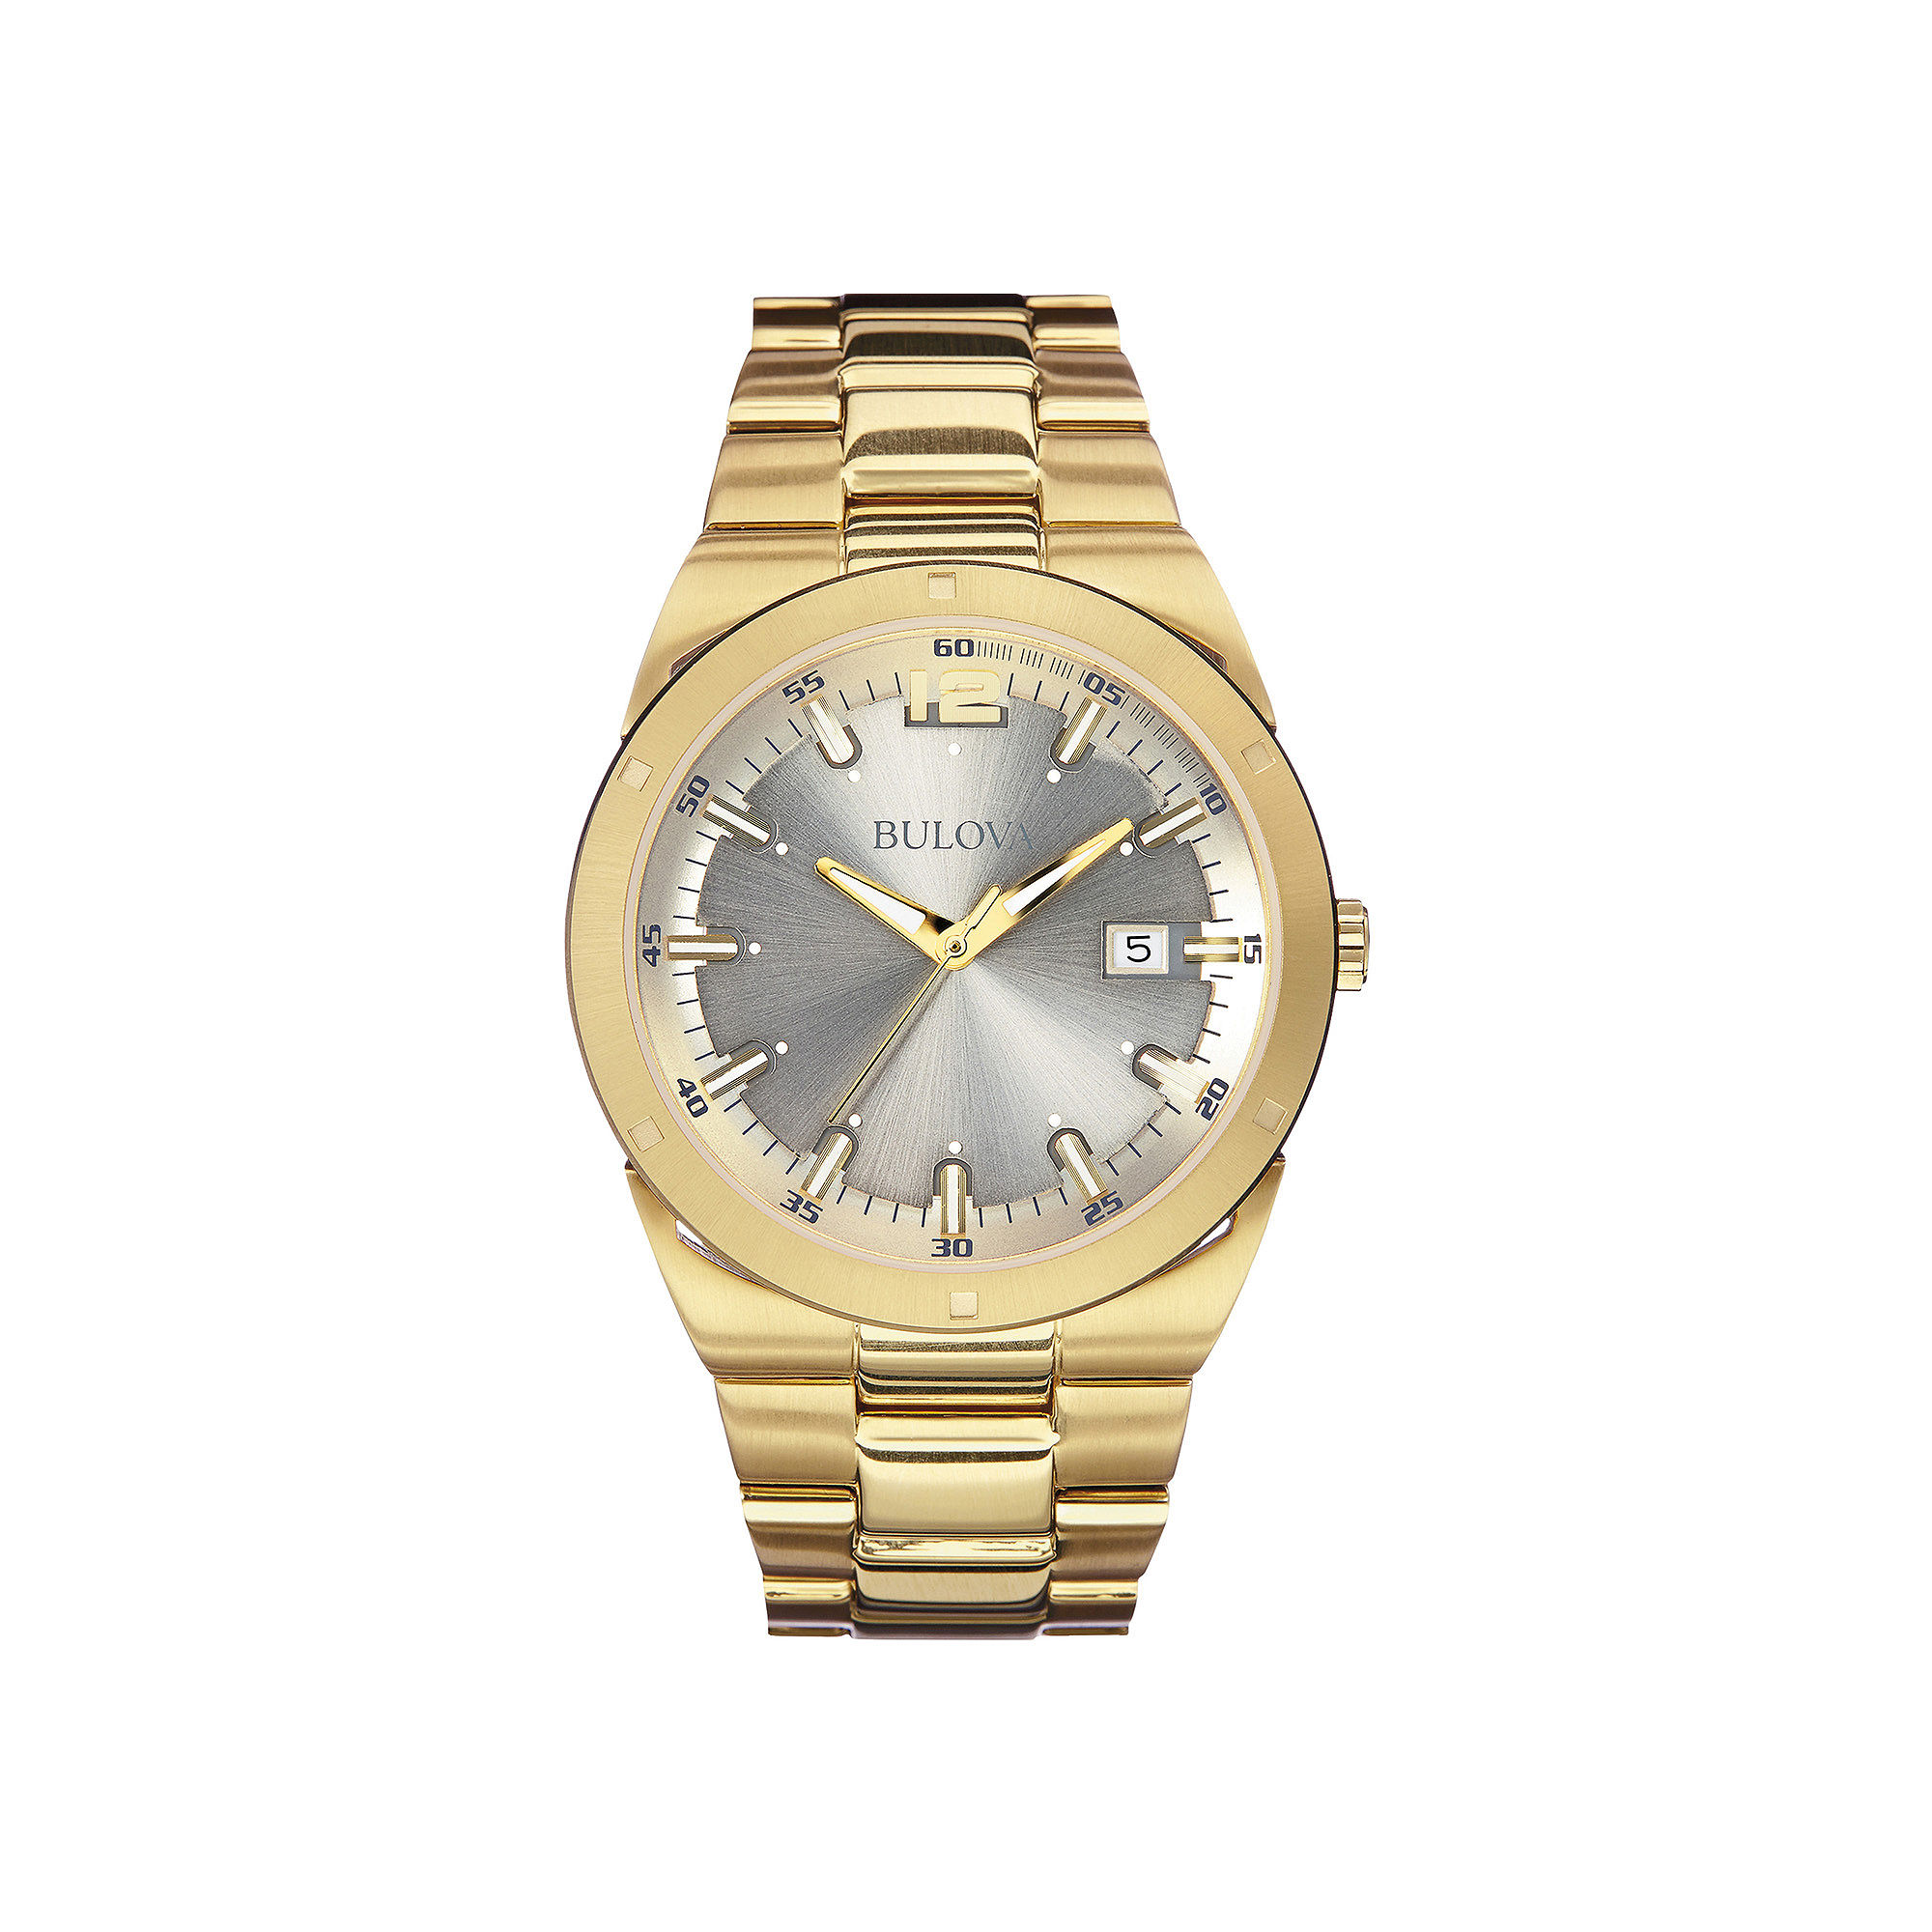 Bulova Mens Gray Dial Gold-Tone Stainless Steel Watch 97B137